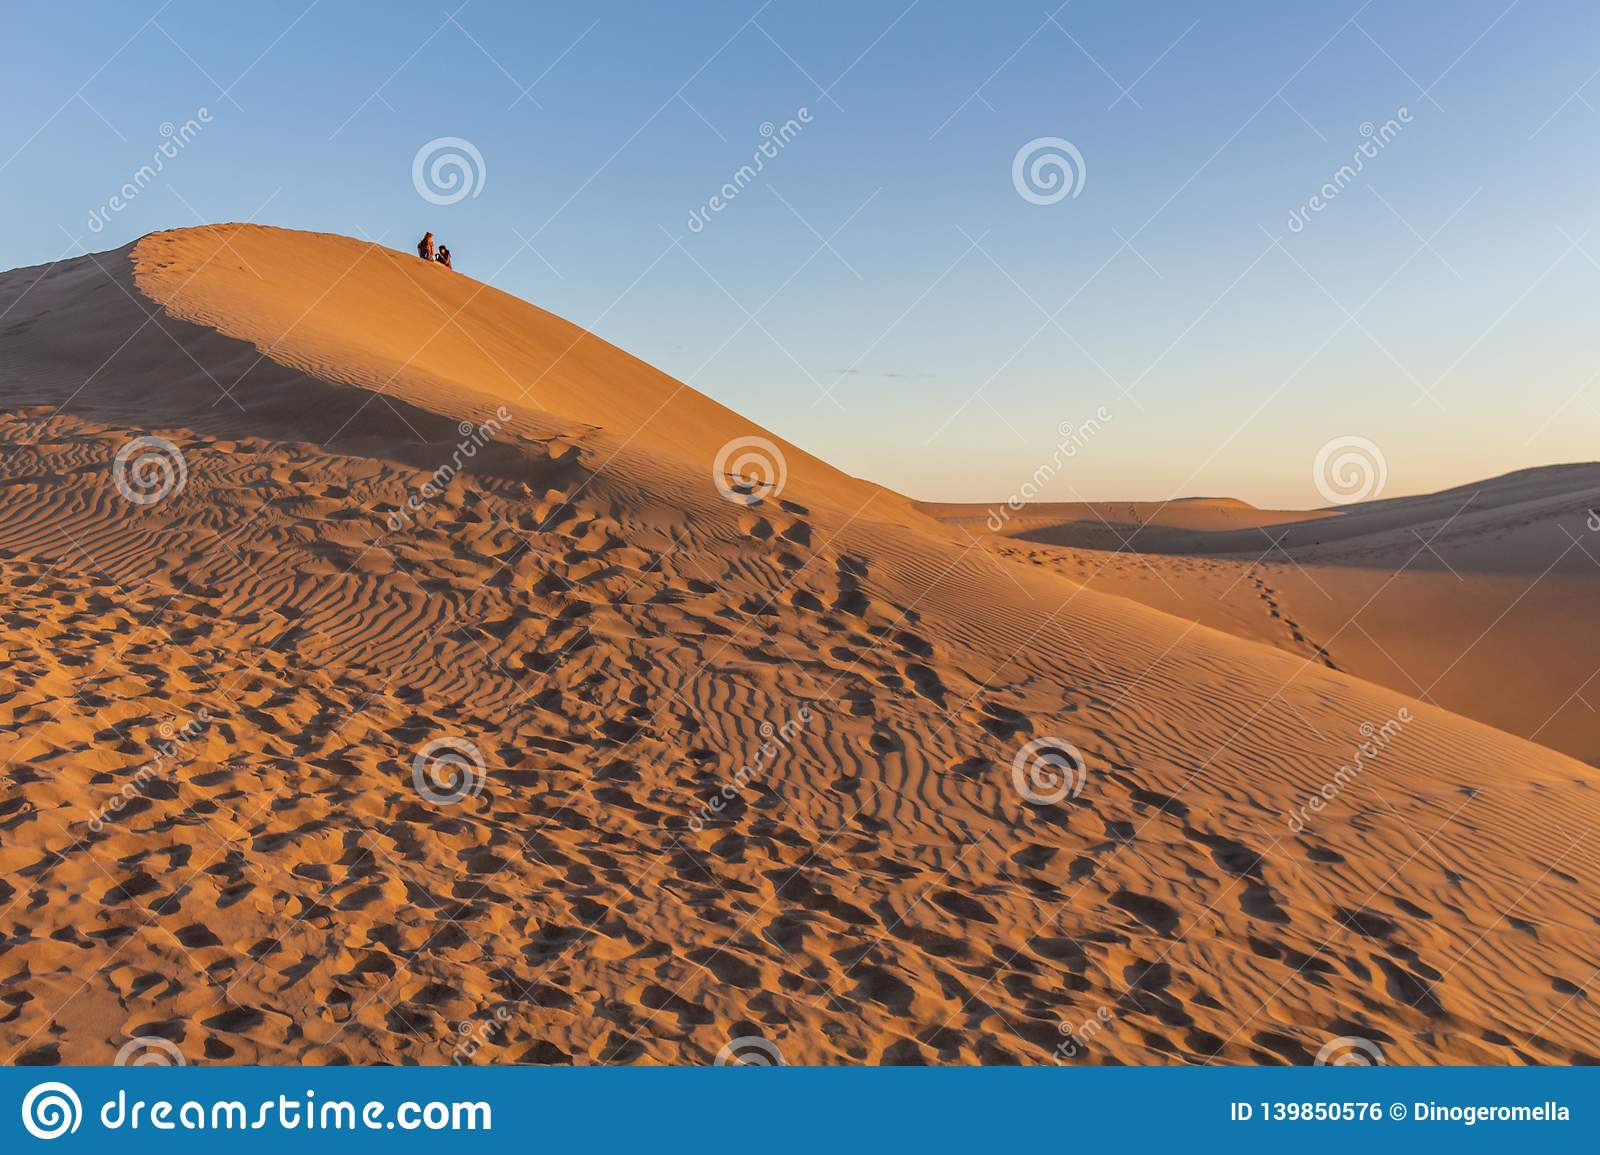 Sitting on the desert dunes in Gran Canaria at sunset